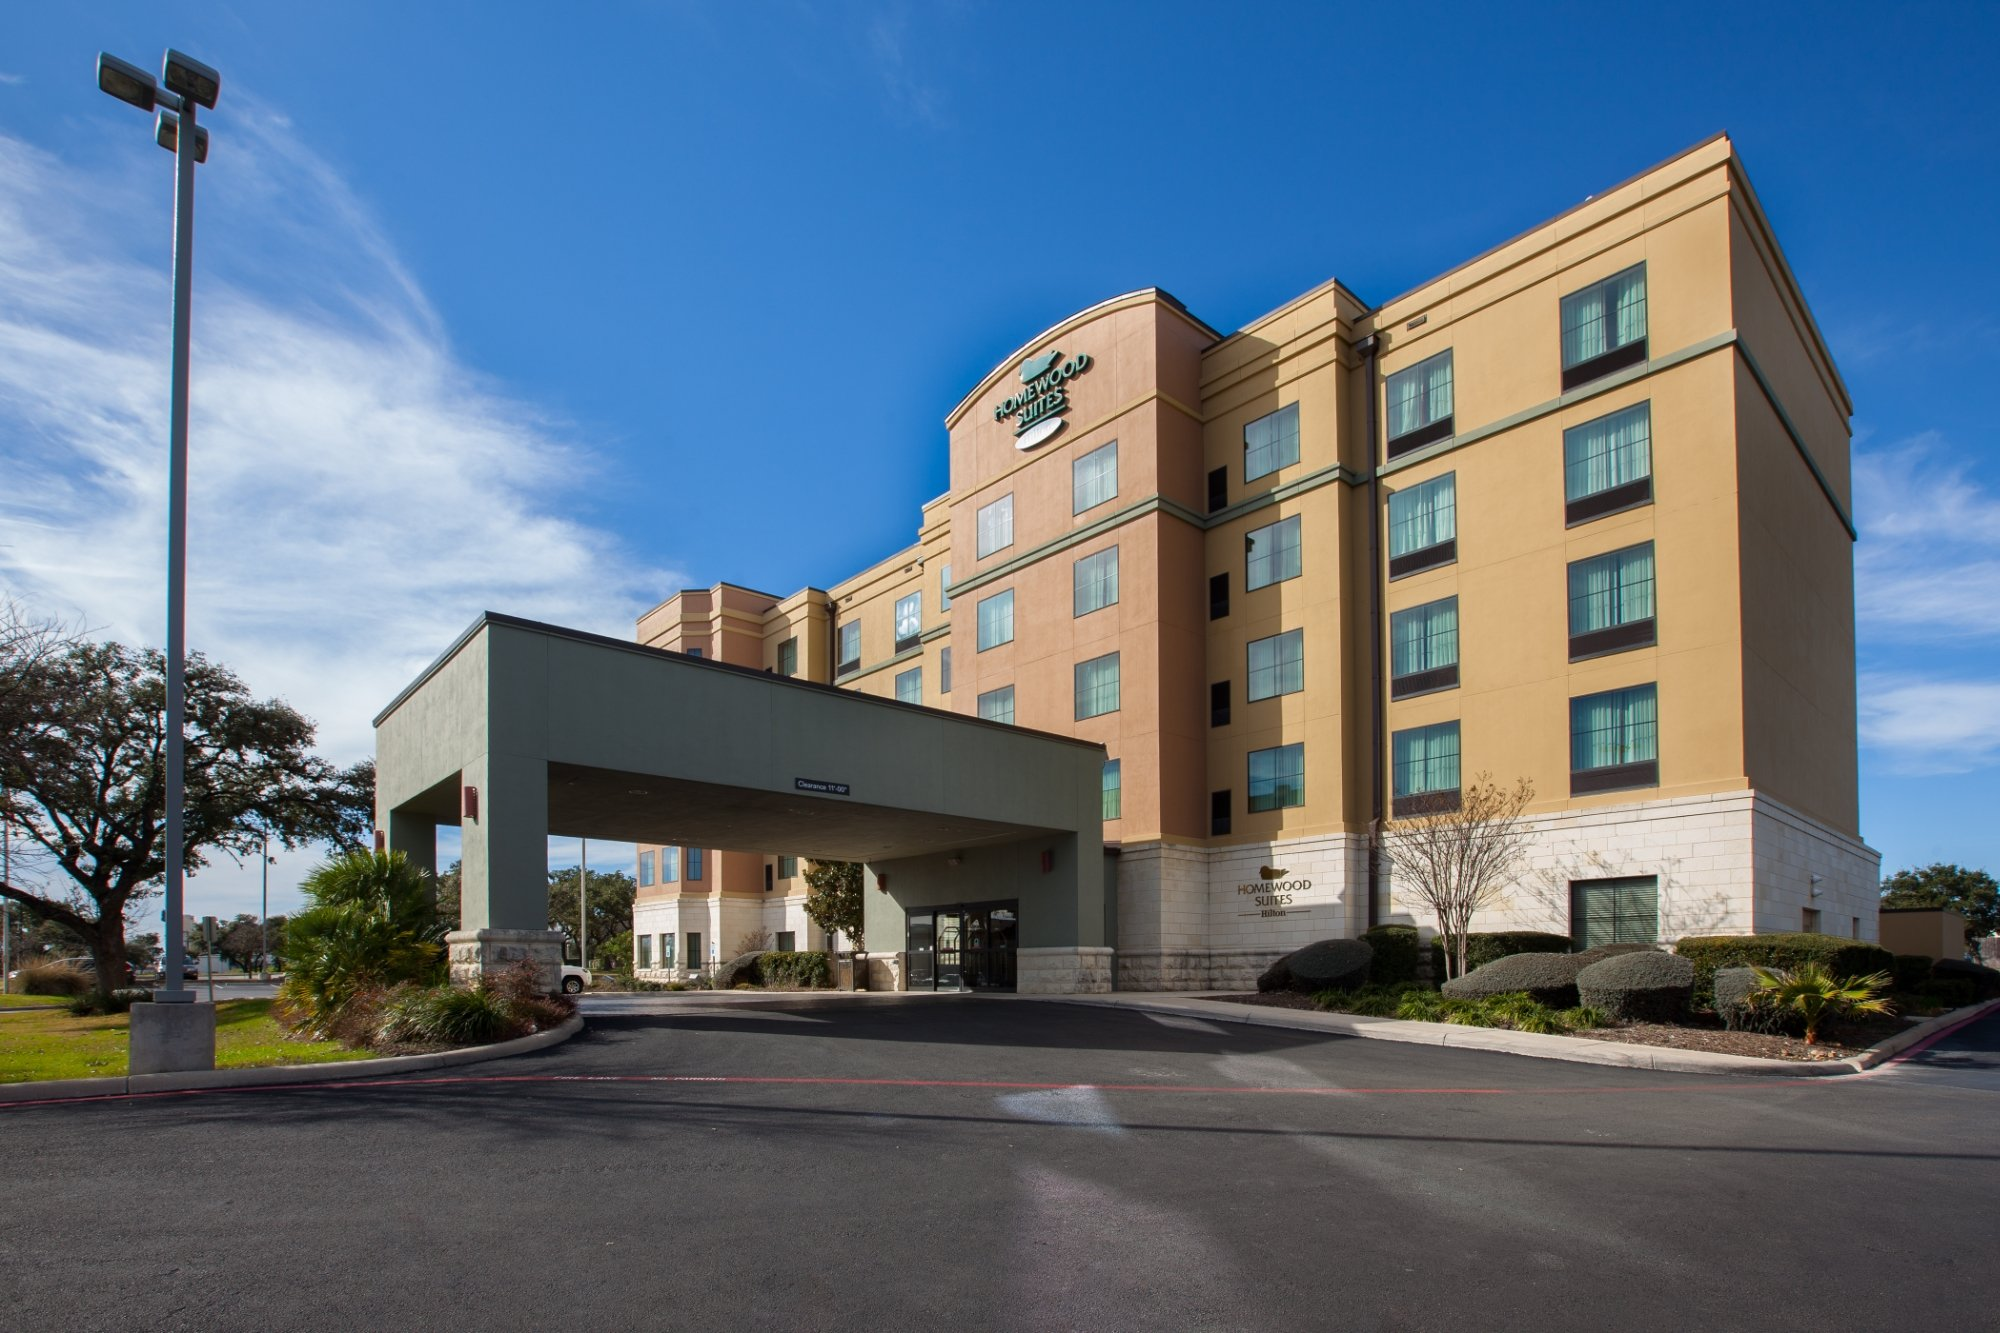 Homewood Suites by Hilton Hotel San Antonio North